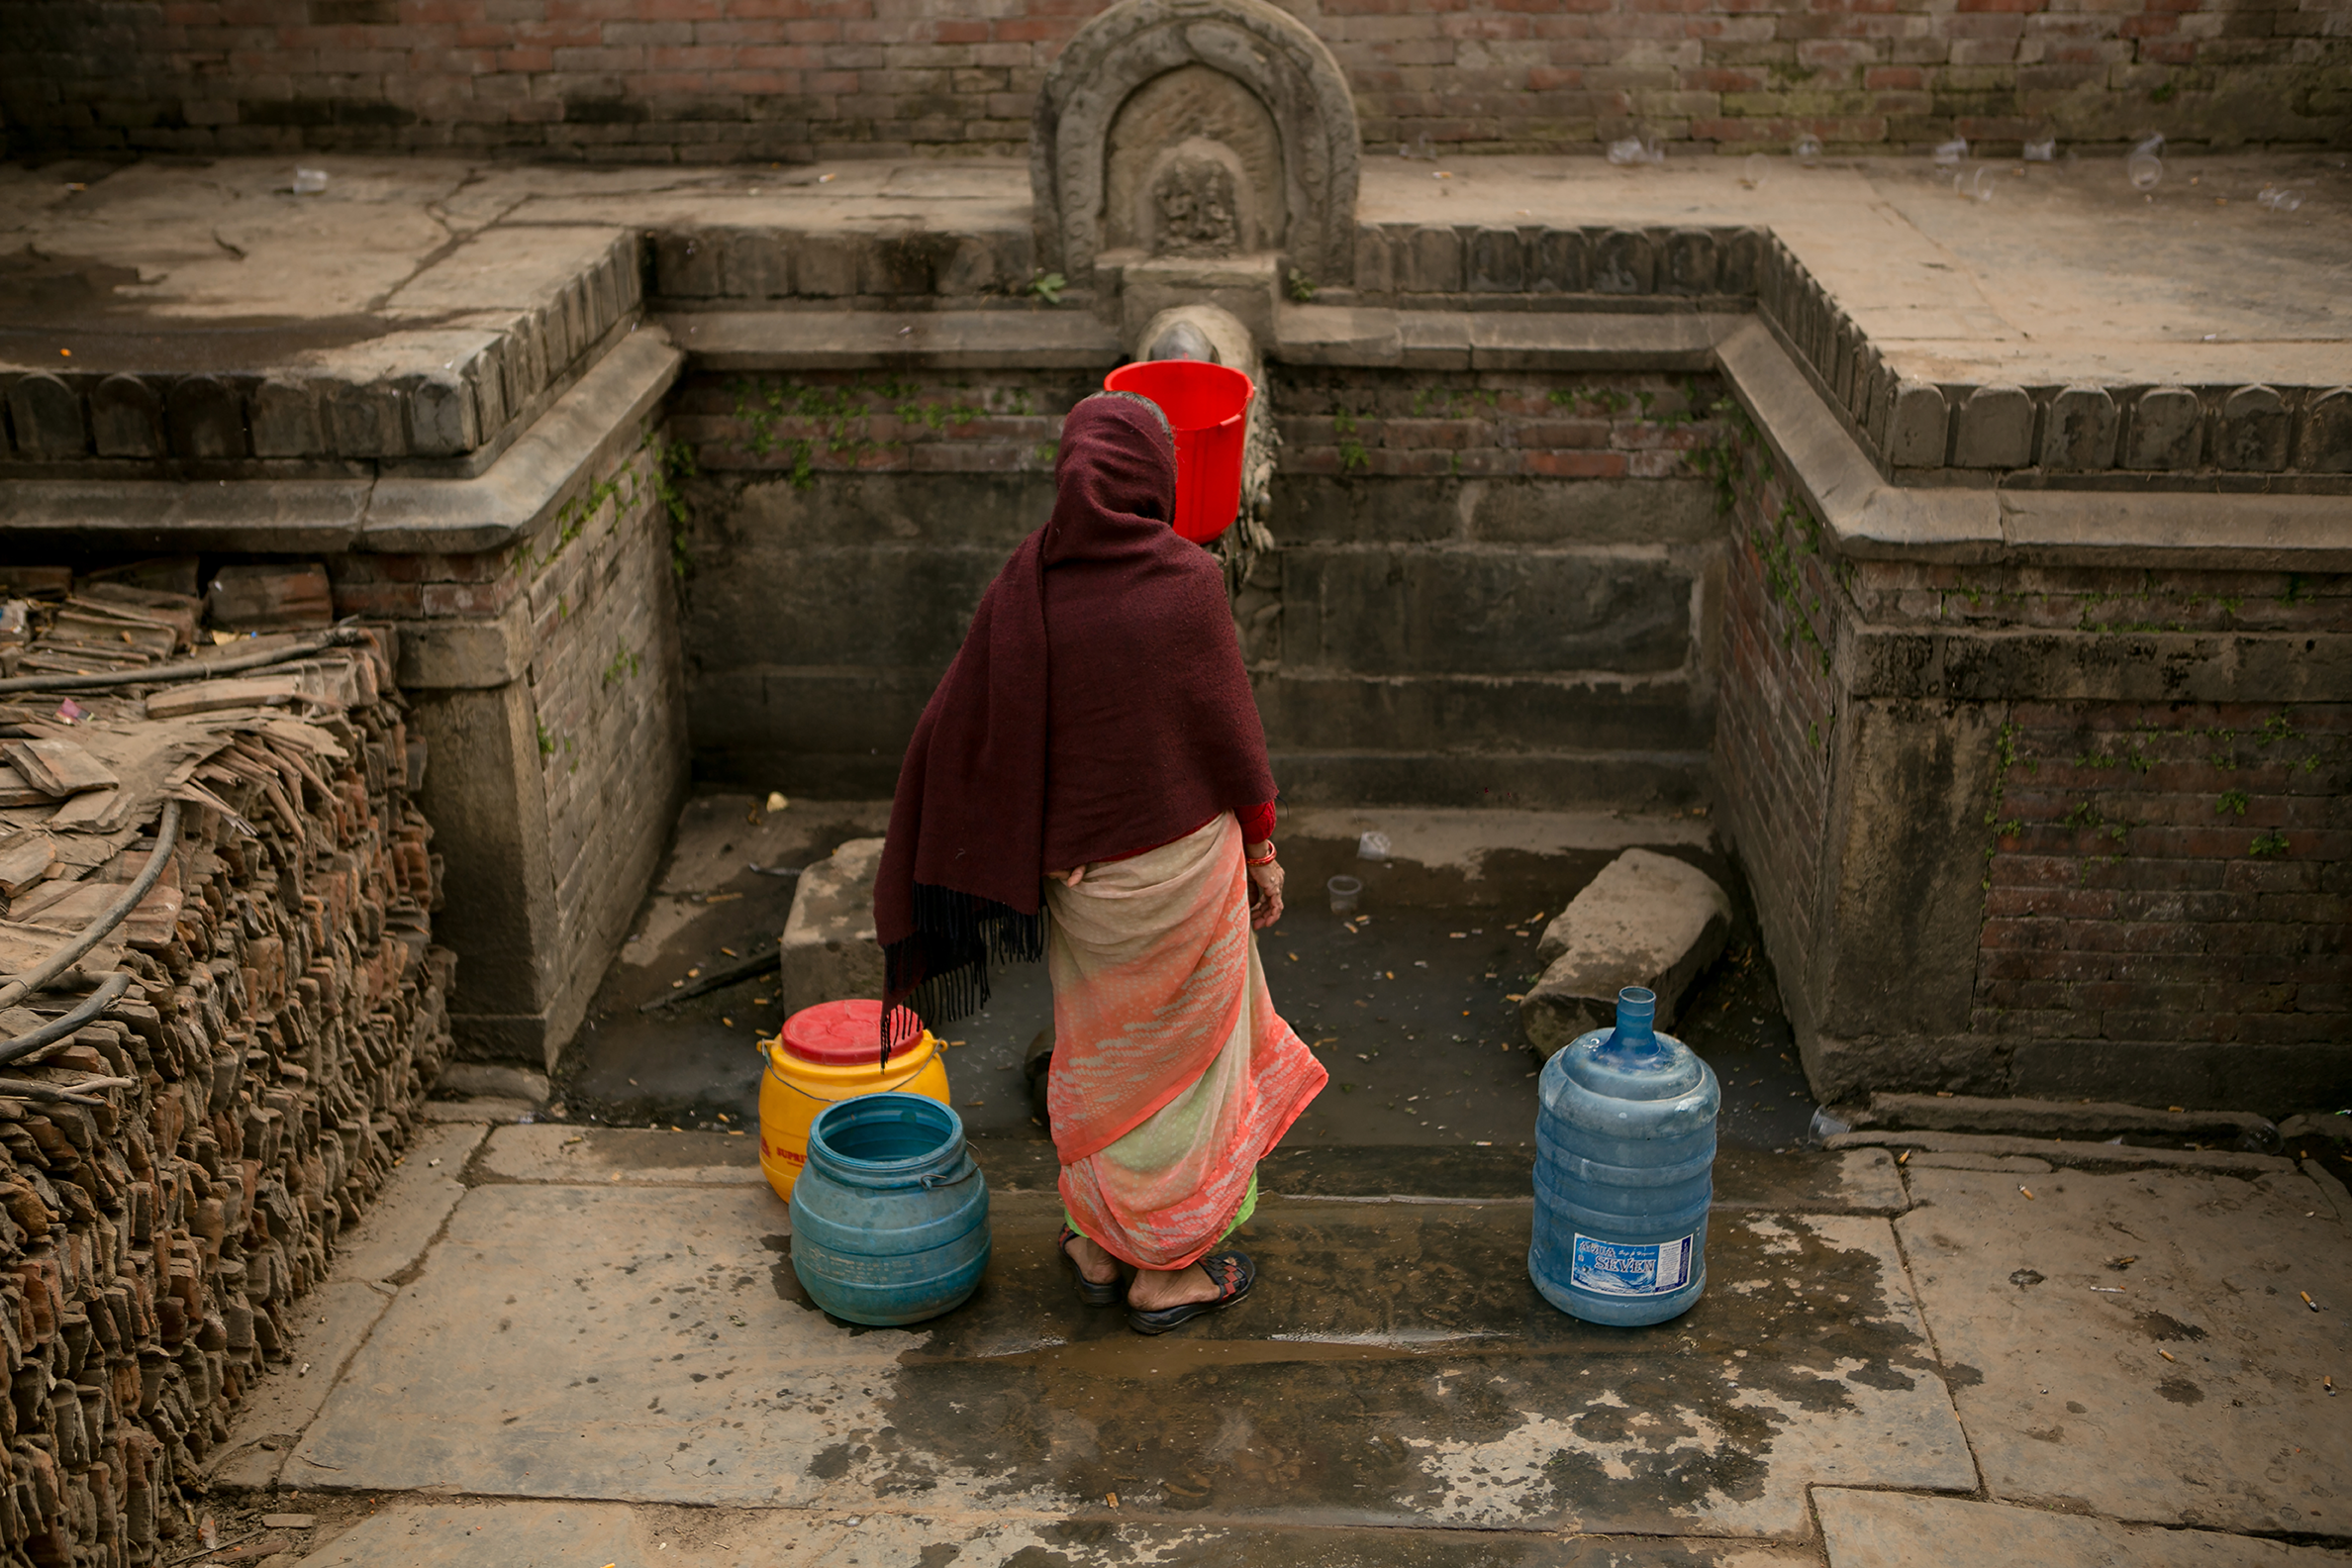 BHAKTAPUR, NEPAL — A woman stands still in front of a public well as she waits for water to fill her containers.